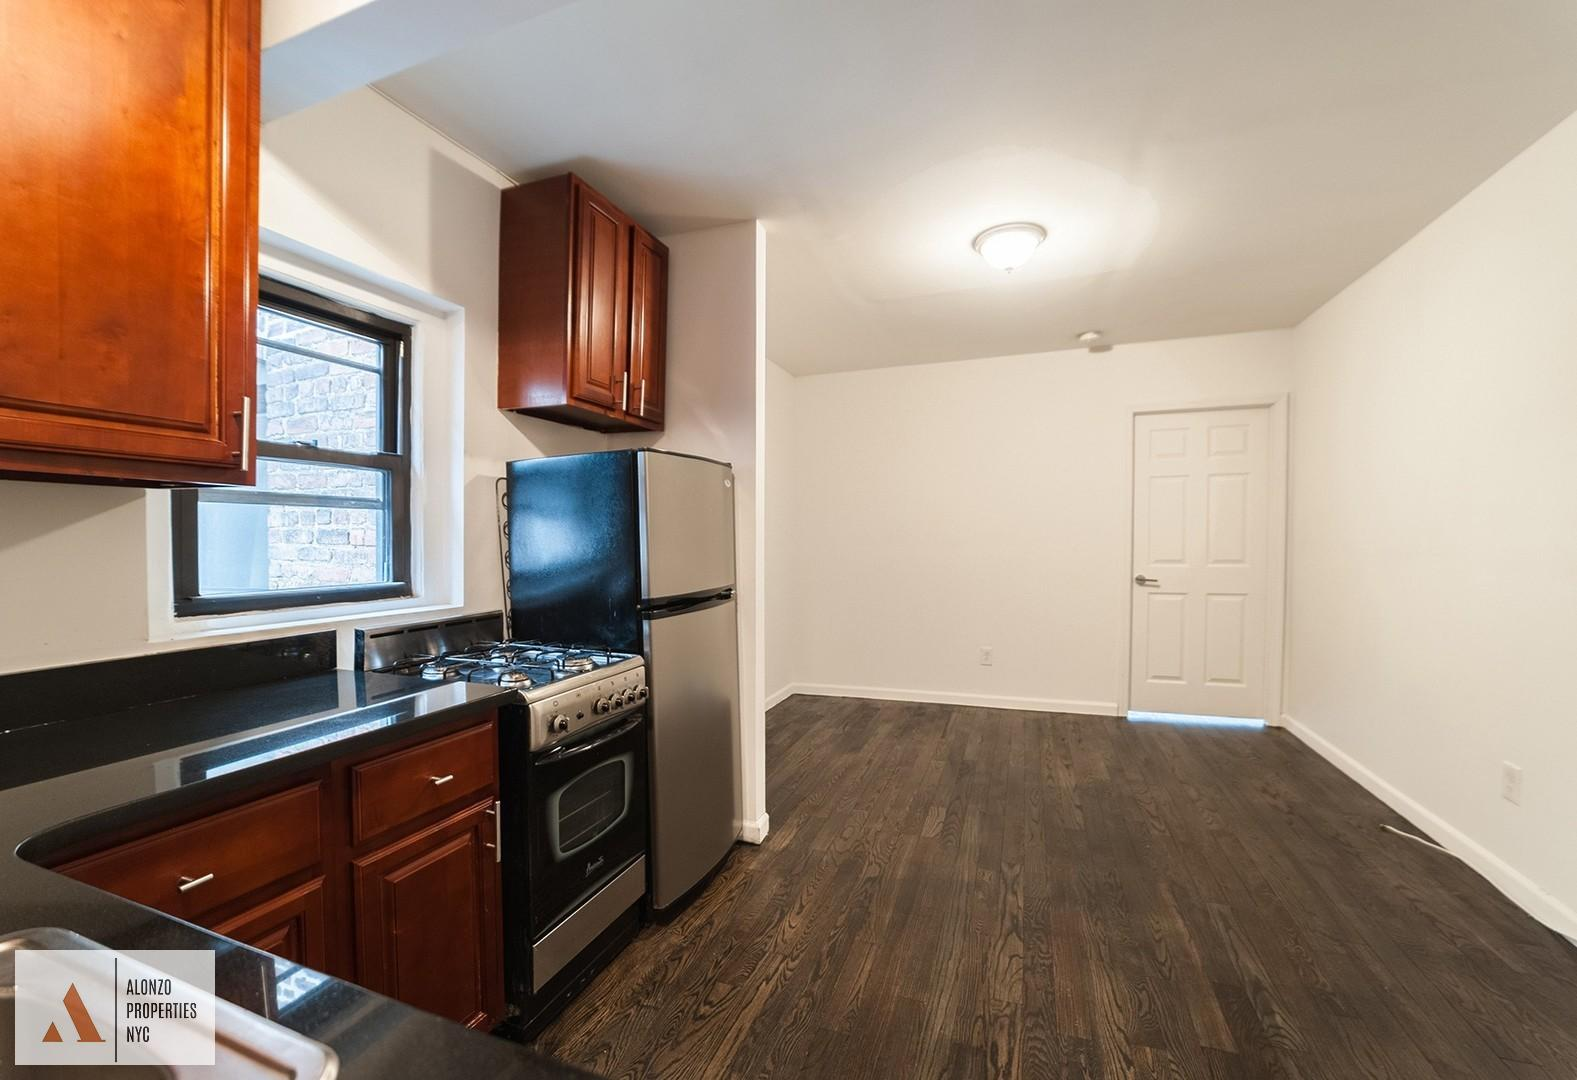 East 10th Street New York Apartments East Village Studio Apartment For Rent